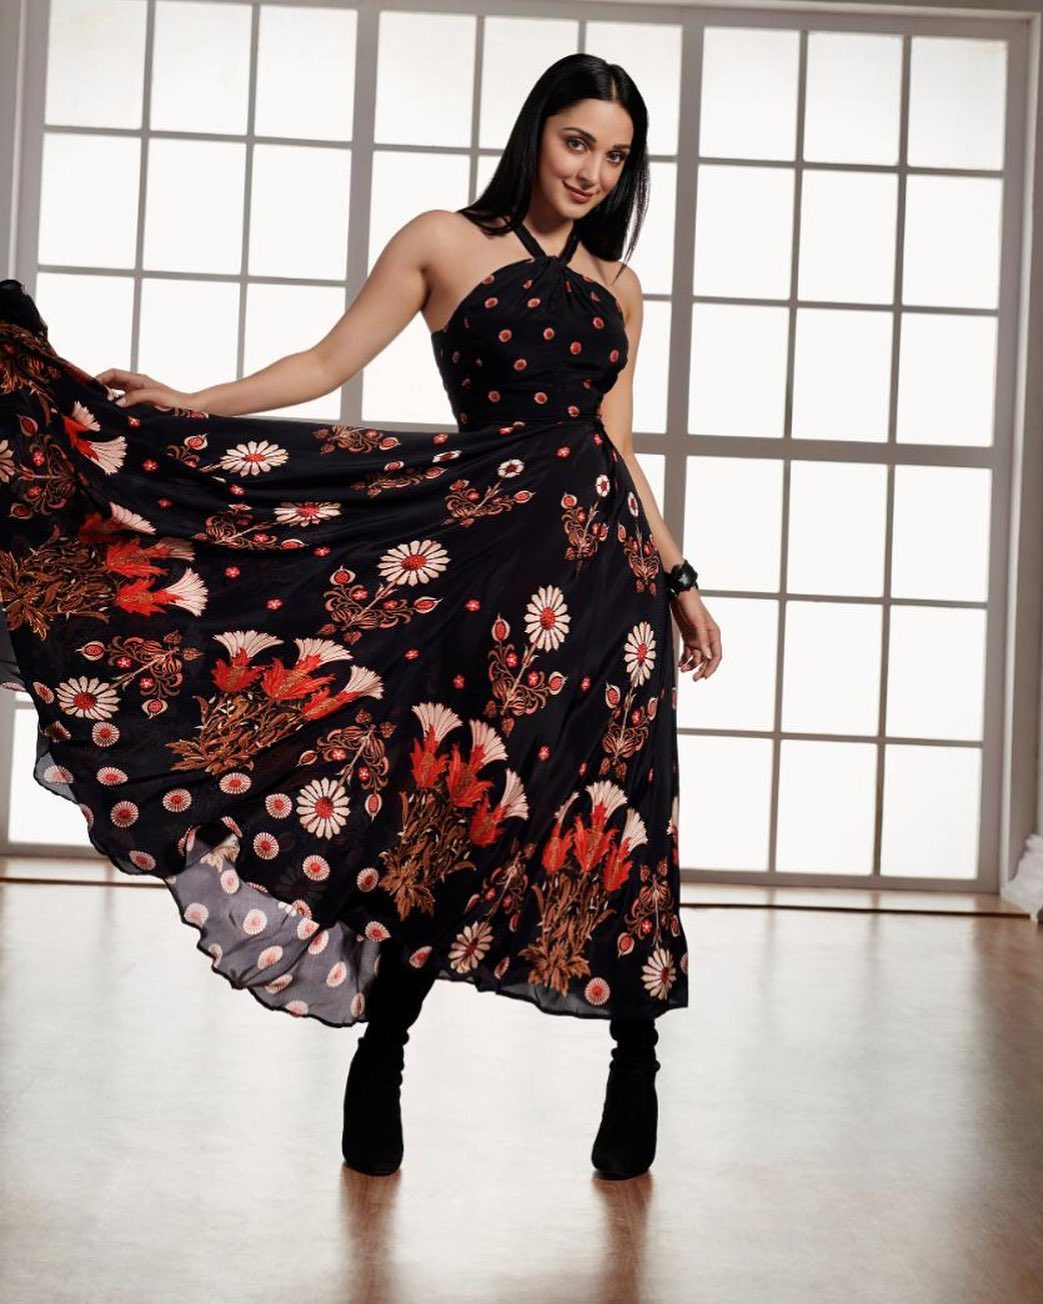 Kiara Advani in Black Floral dress